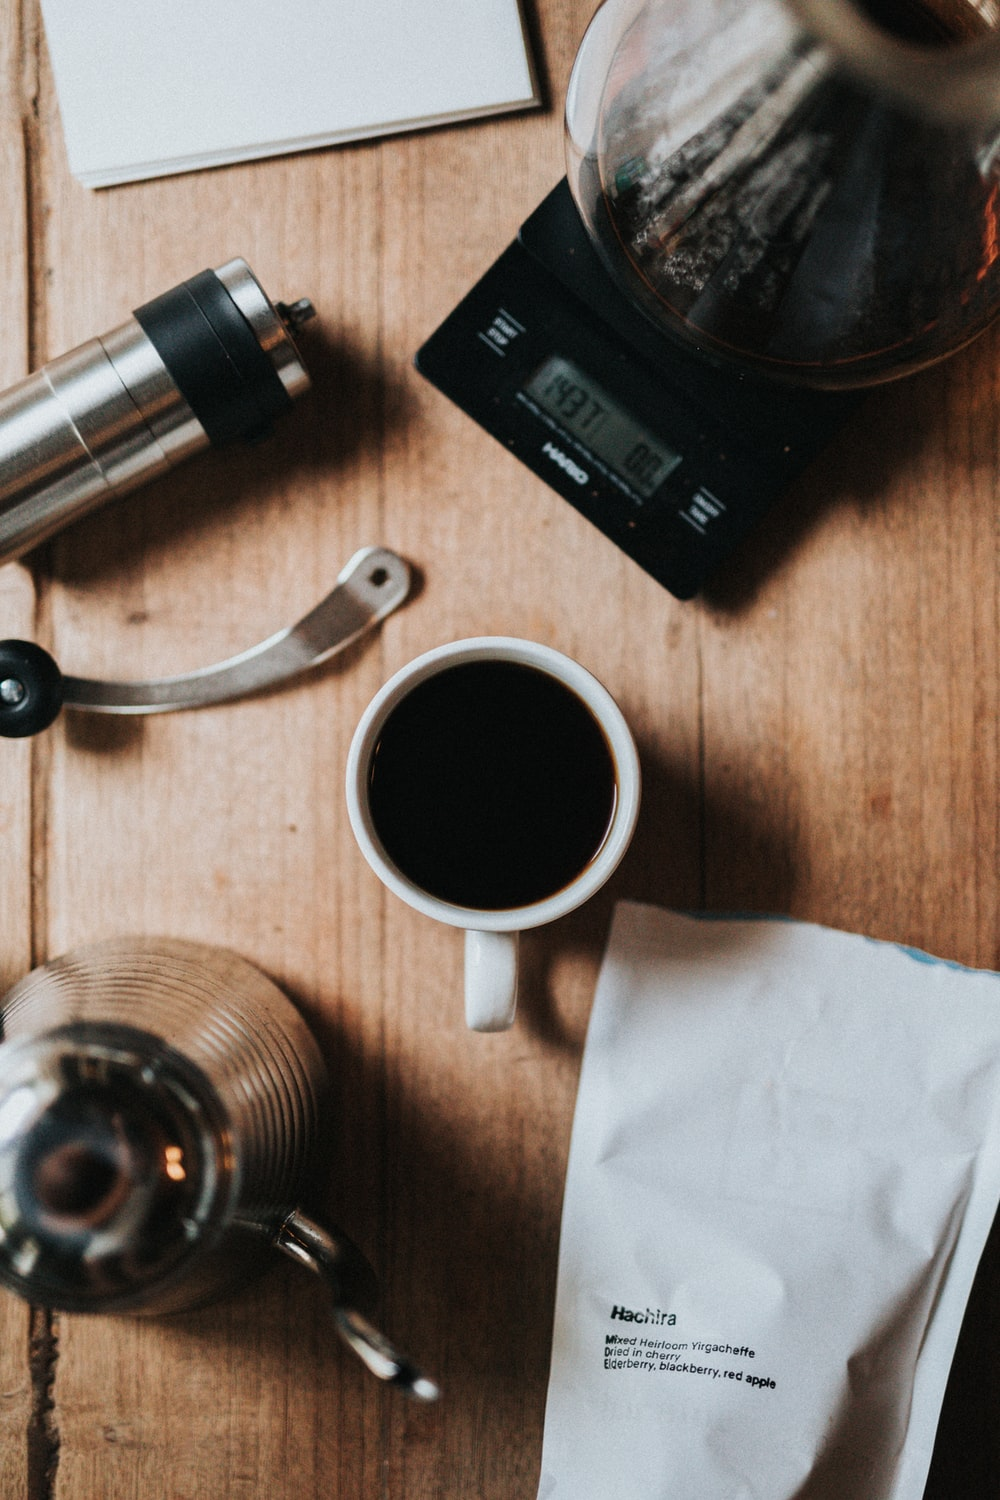 cup of black coffee beside stainless steel teapot